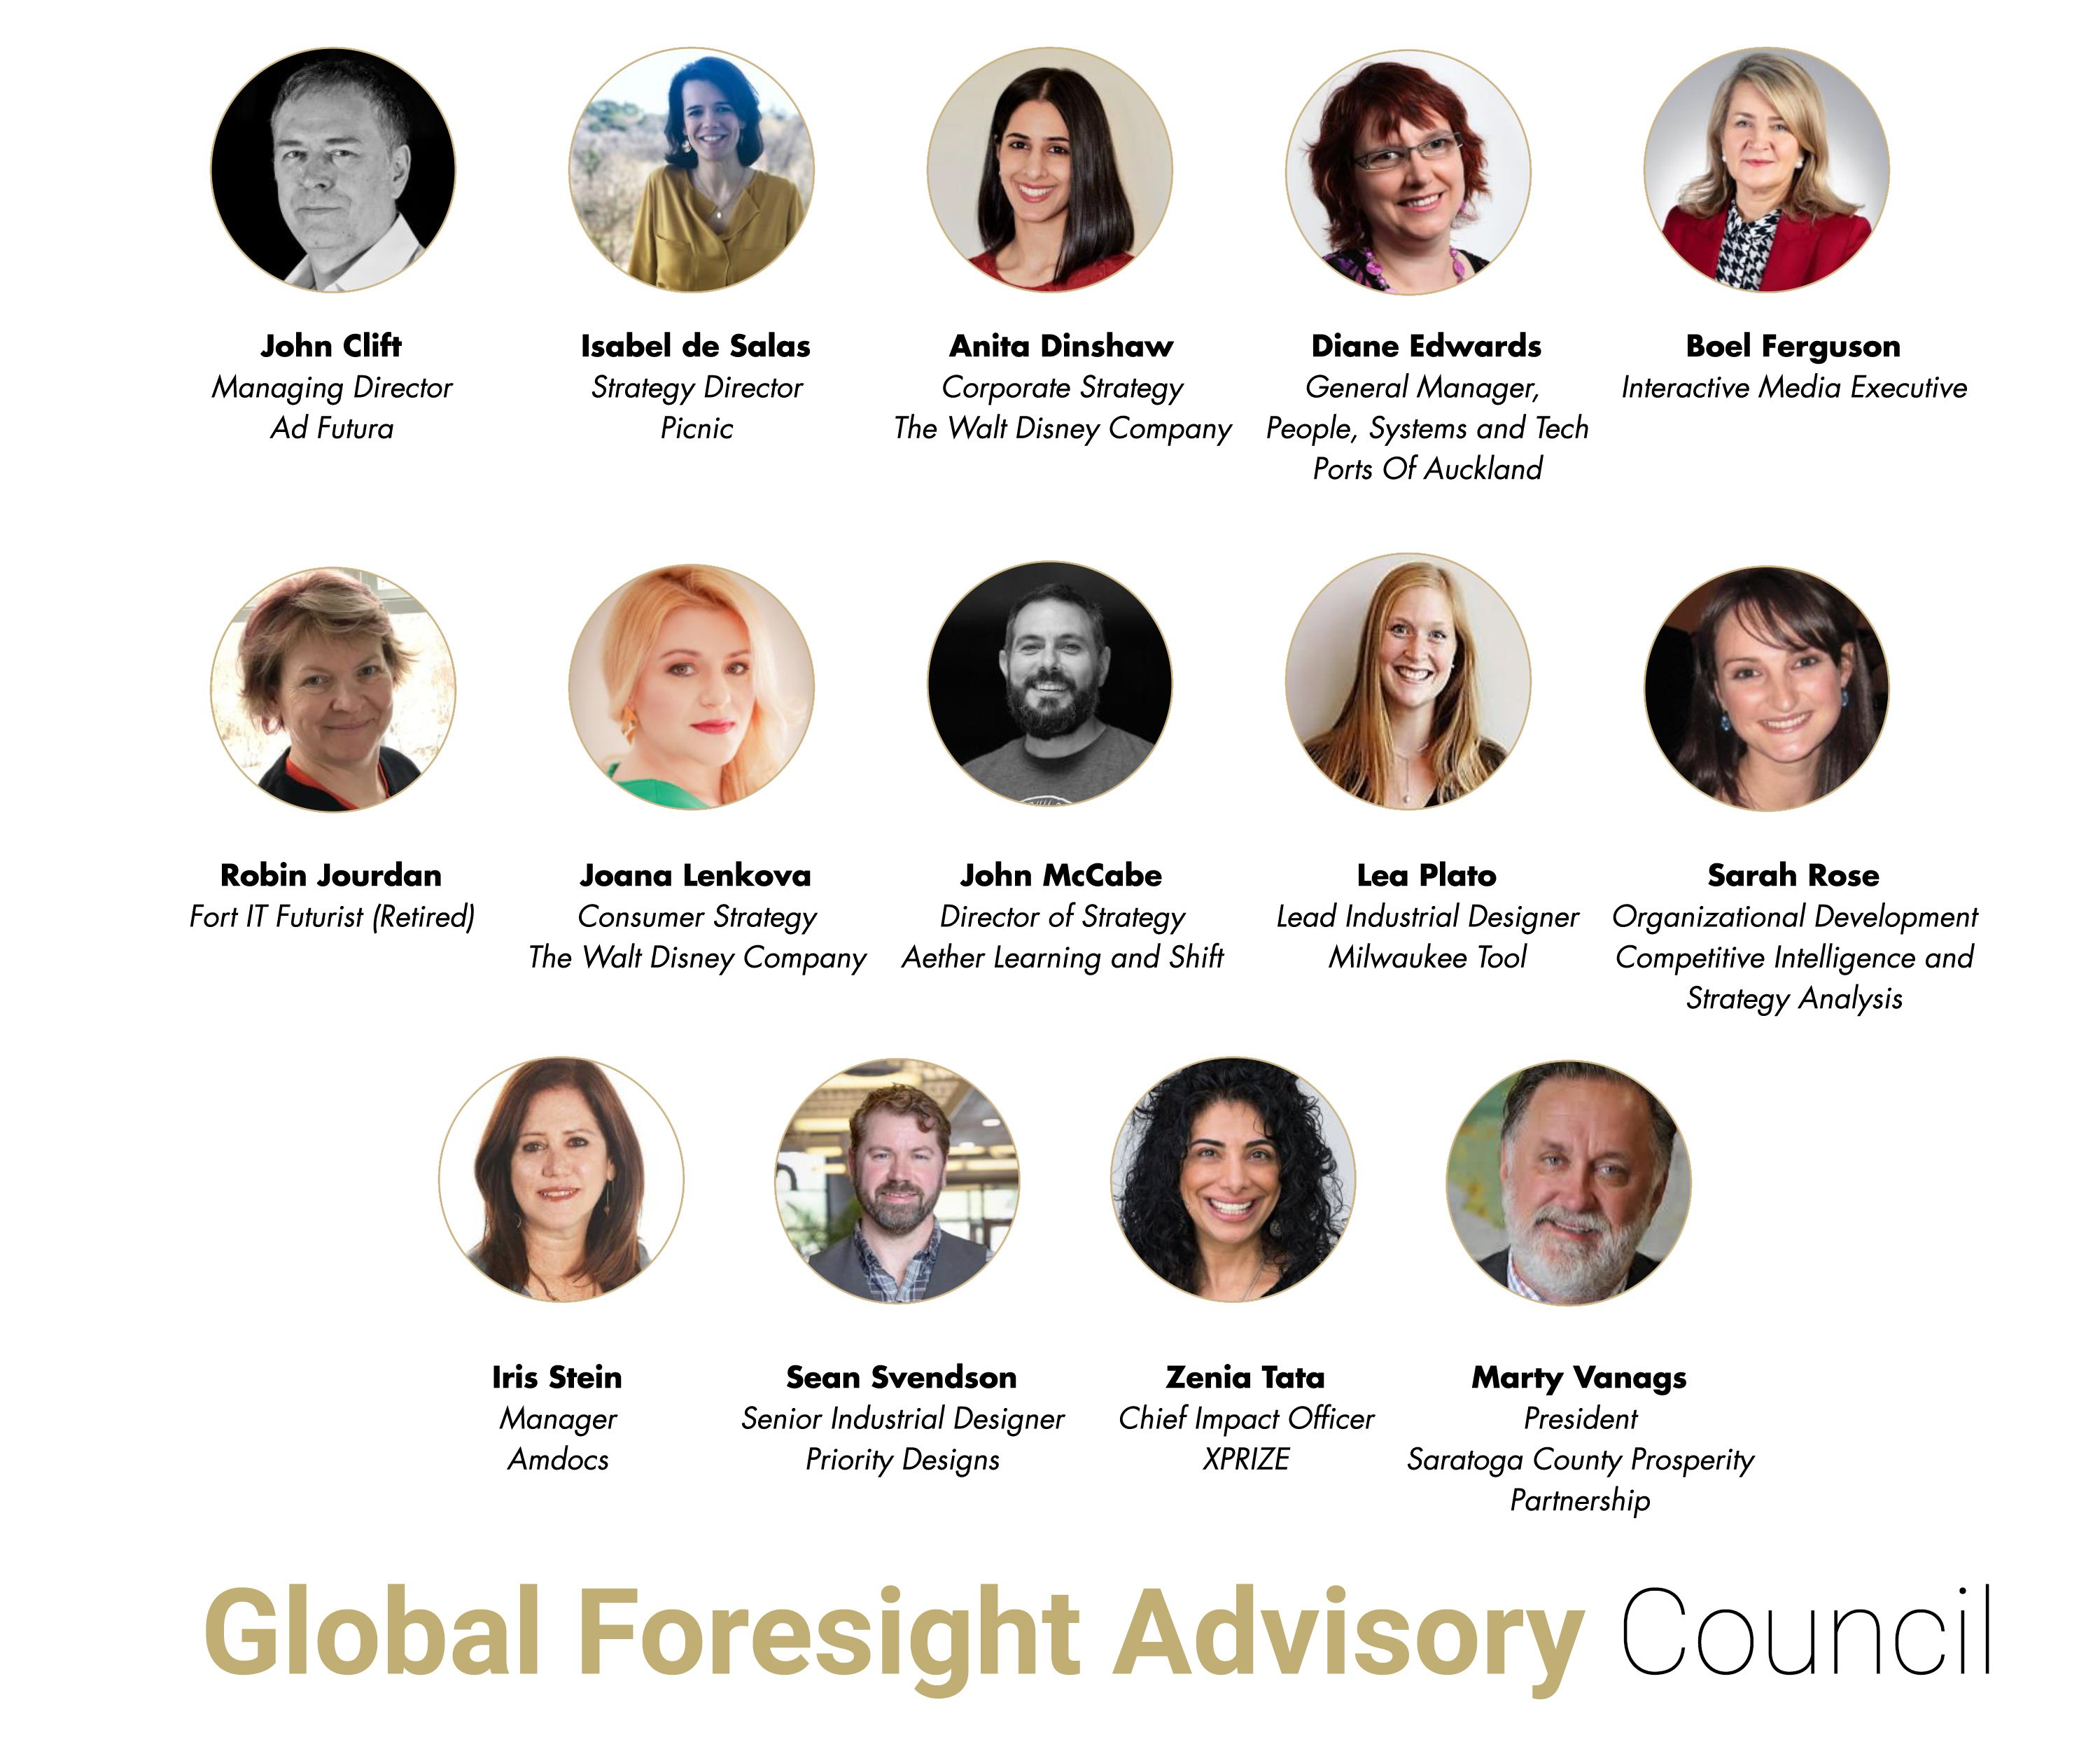 Global Foresight Advisory Council